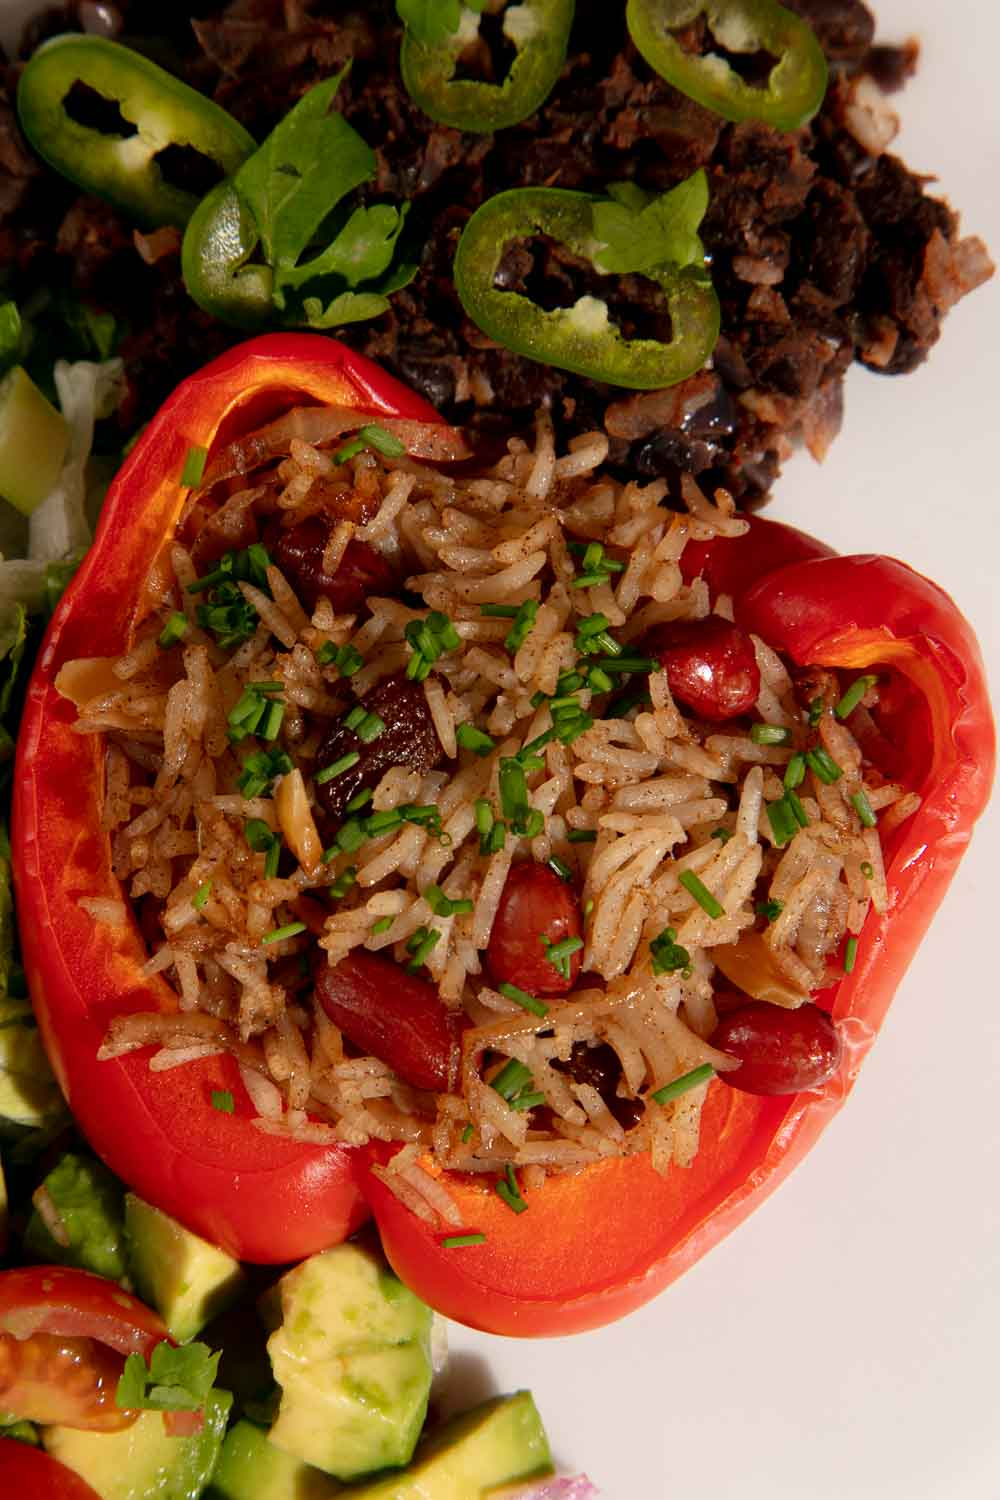 Rice stuffed red bell pepper.